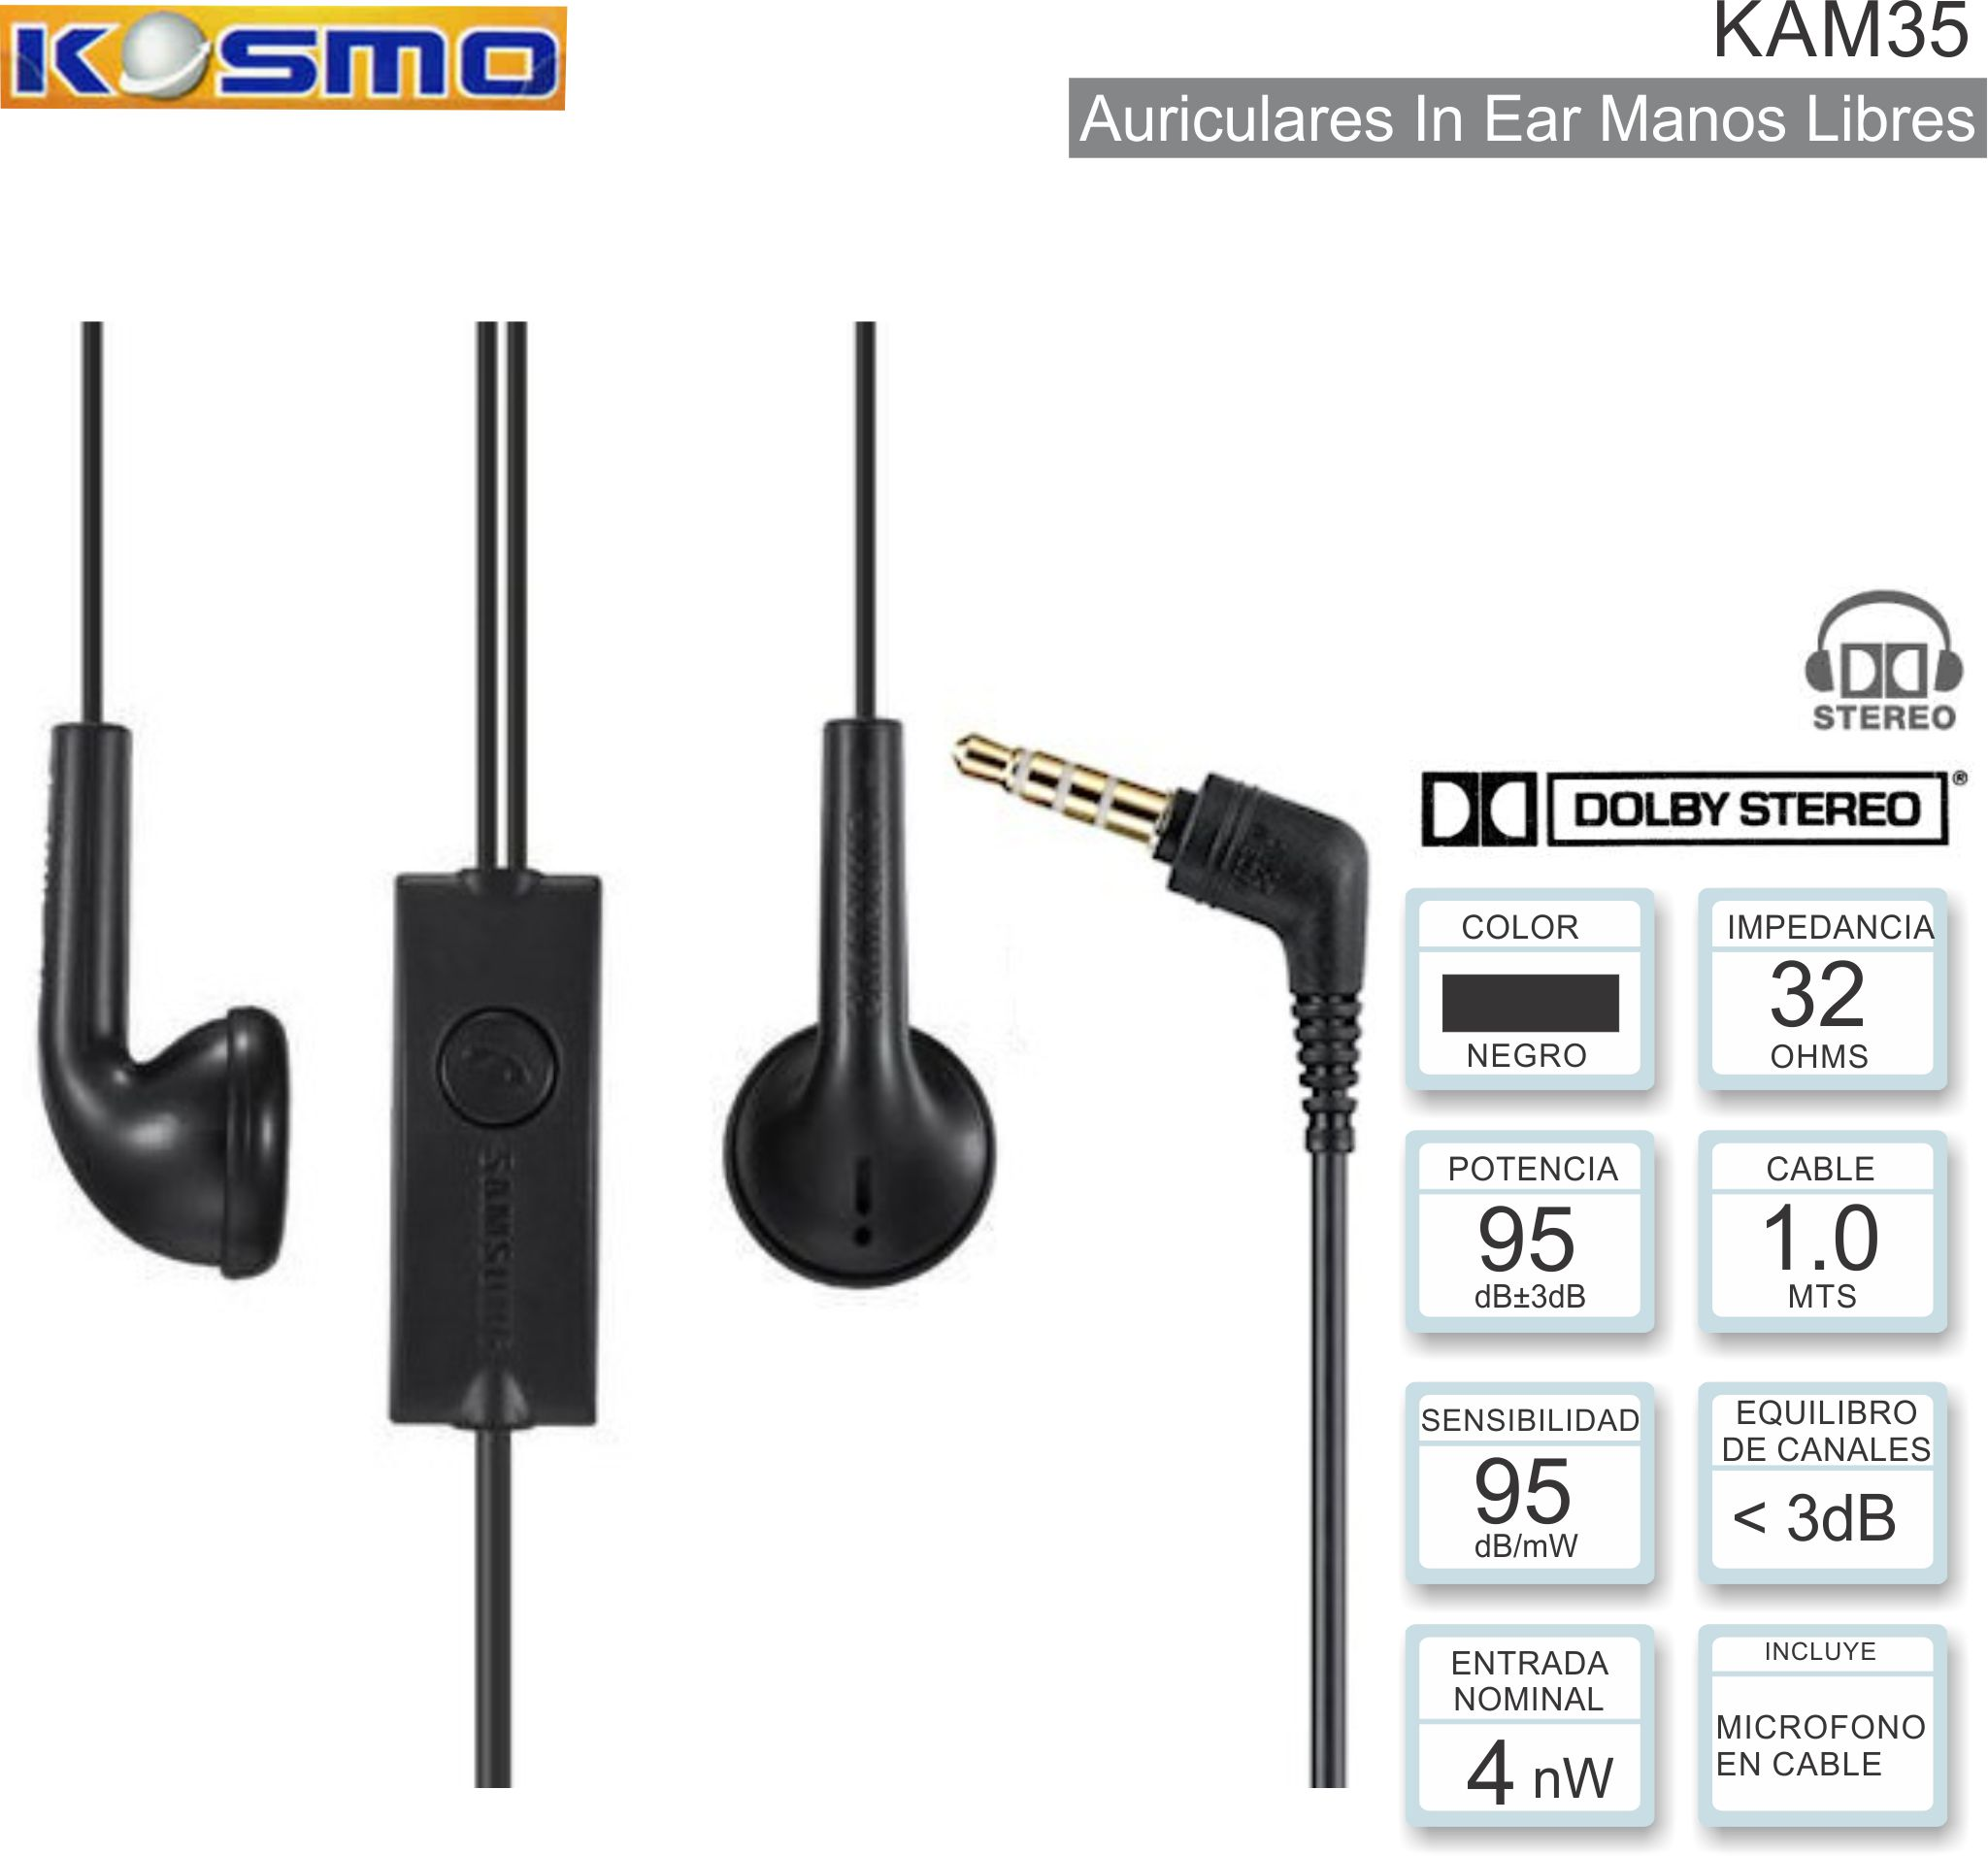 Auricular ML IN KOSMO KAM35